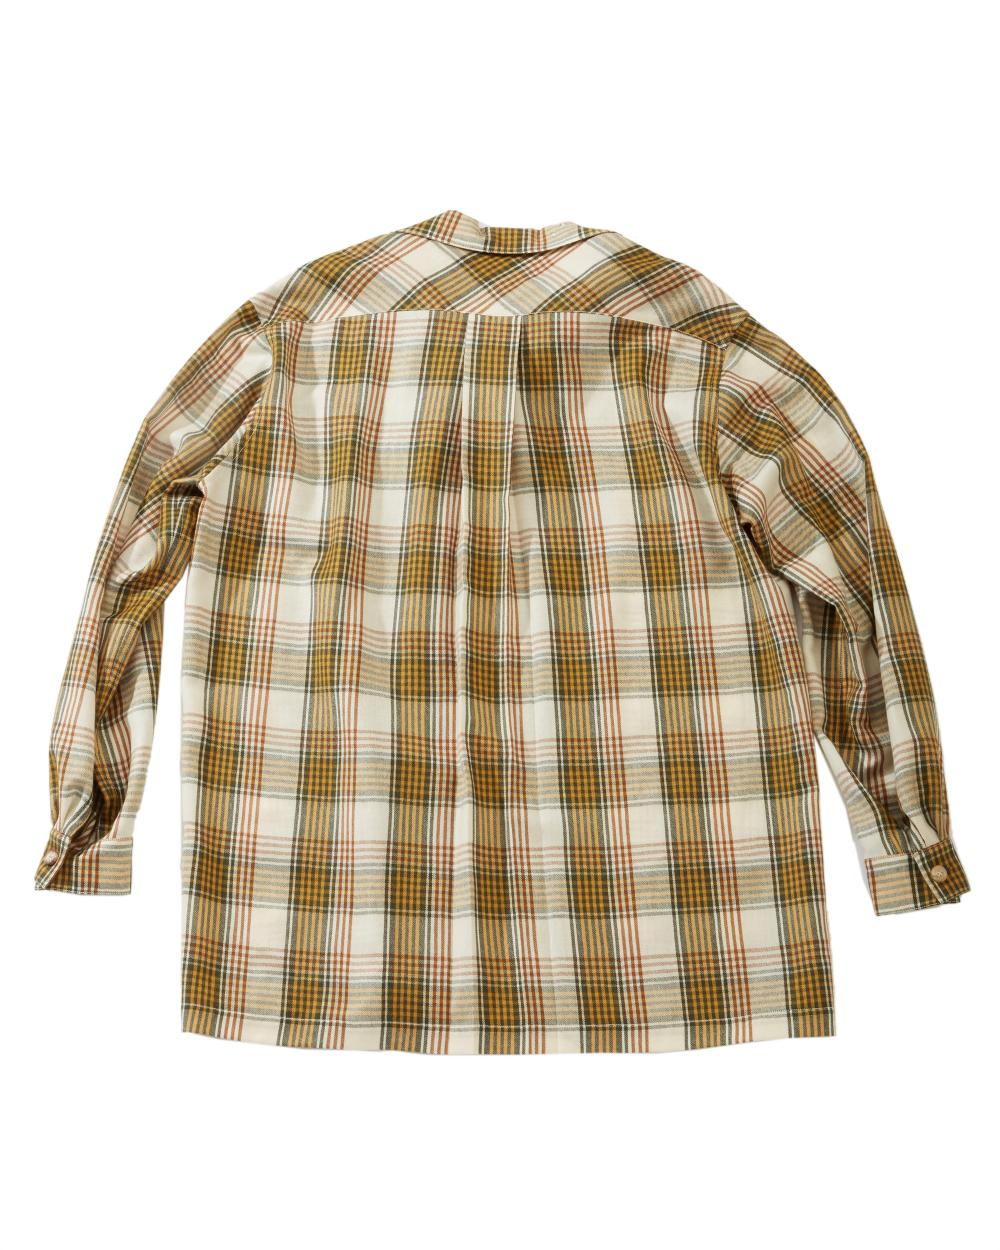 A ladies Hermès wool plaid flannel shirt and a pair of riding pants